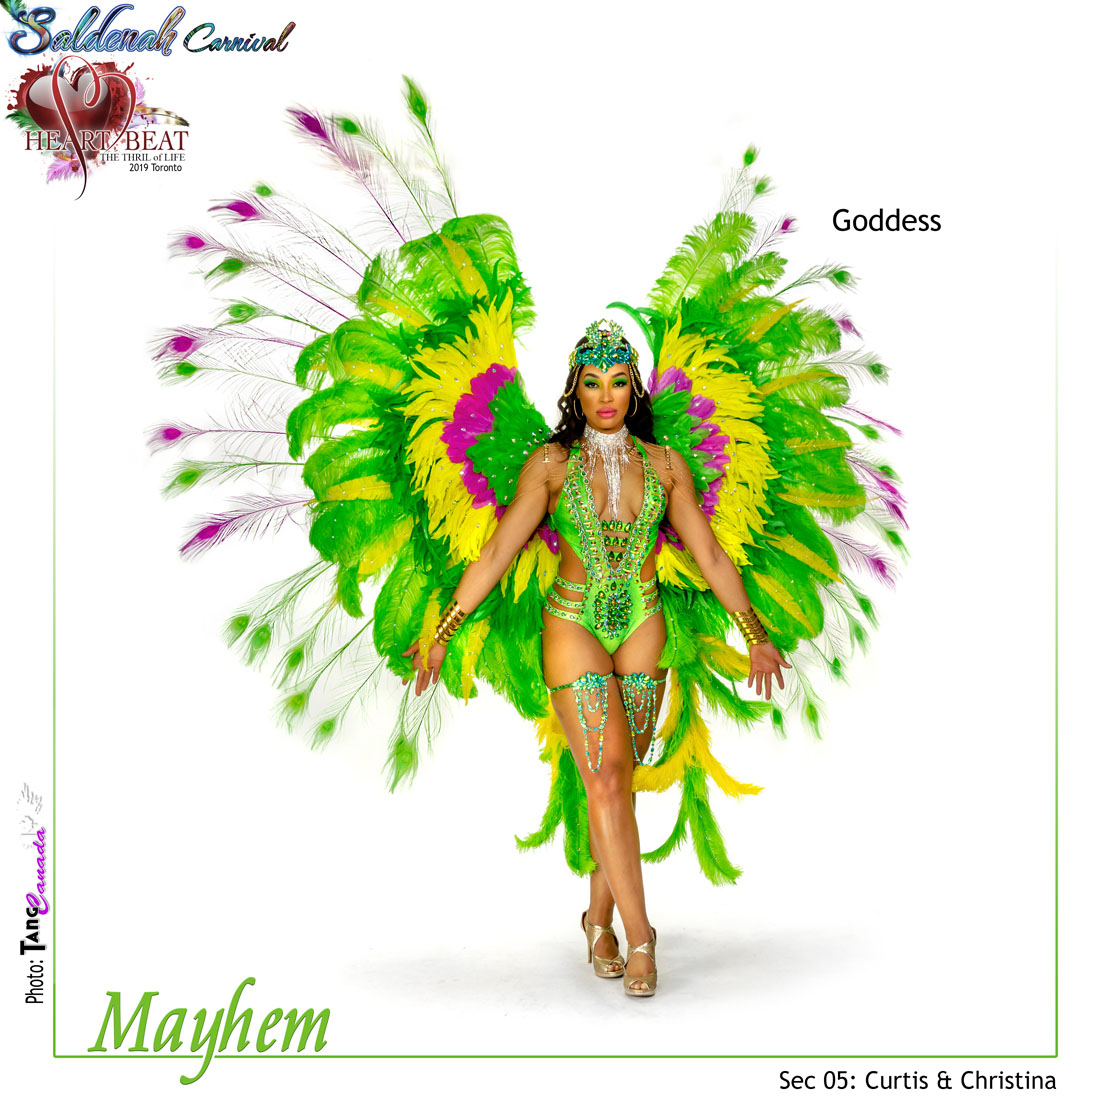 Saldenah Carnival Section 5 Mayhem